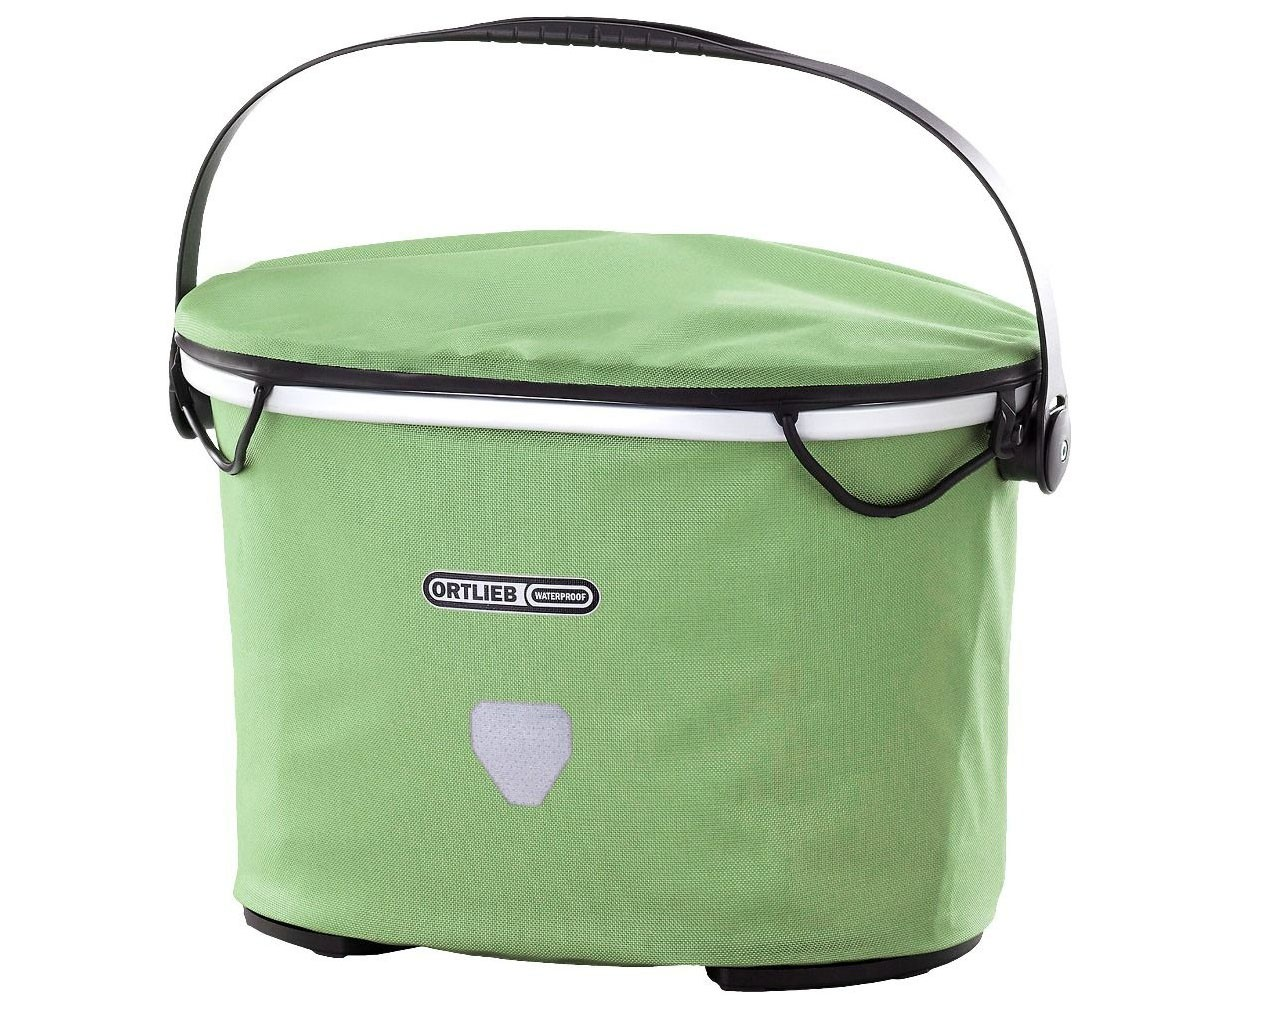 Ortlieb Up-Town City 17.5 litre waterproof Bicycle basket without Mounting Set PVC free   pistacchio